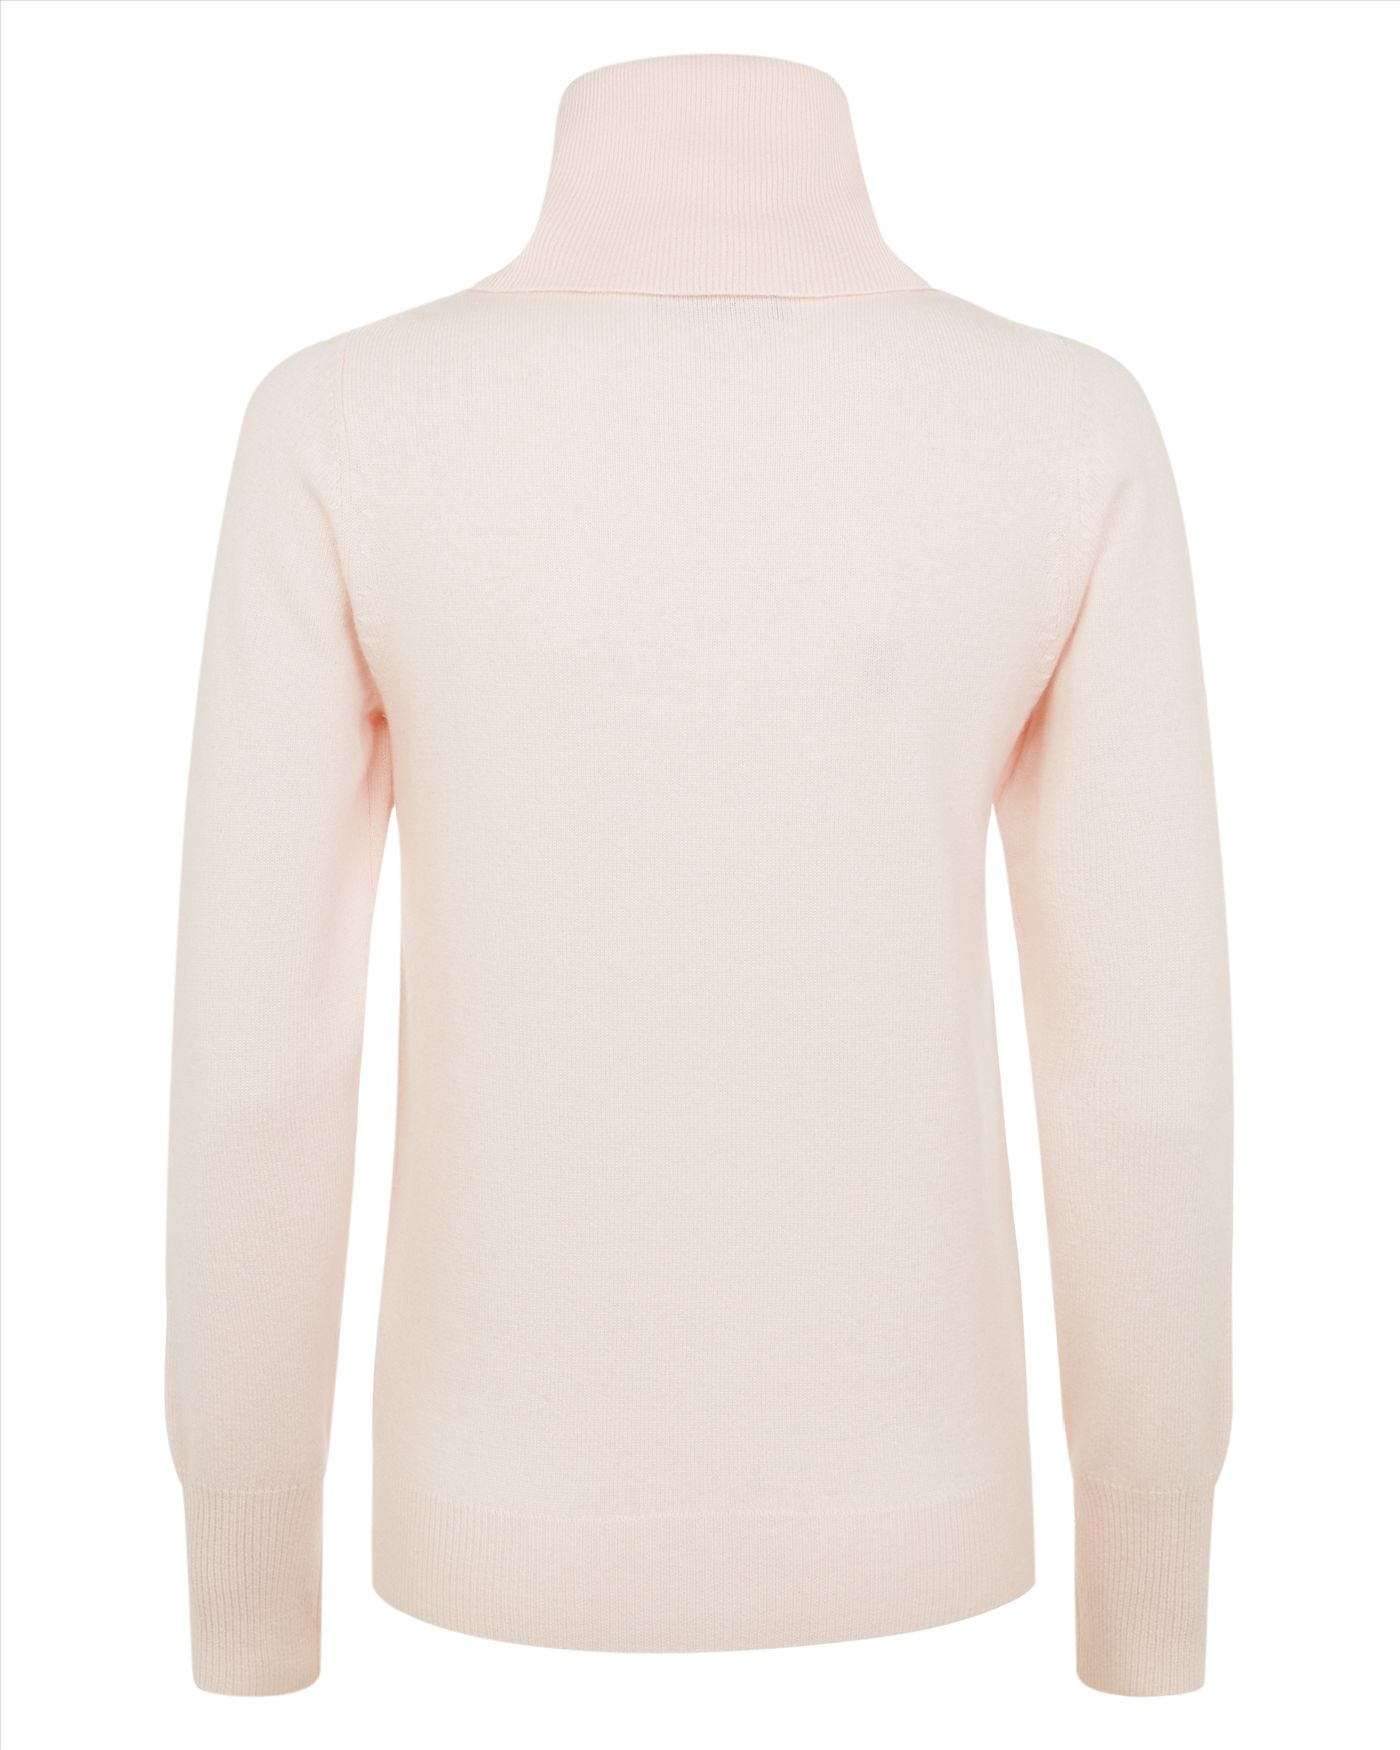 Jaeger Cashmere Cowl Neck Sweater in Pink | Lyst